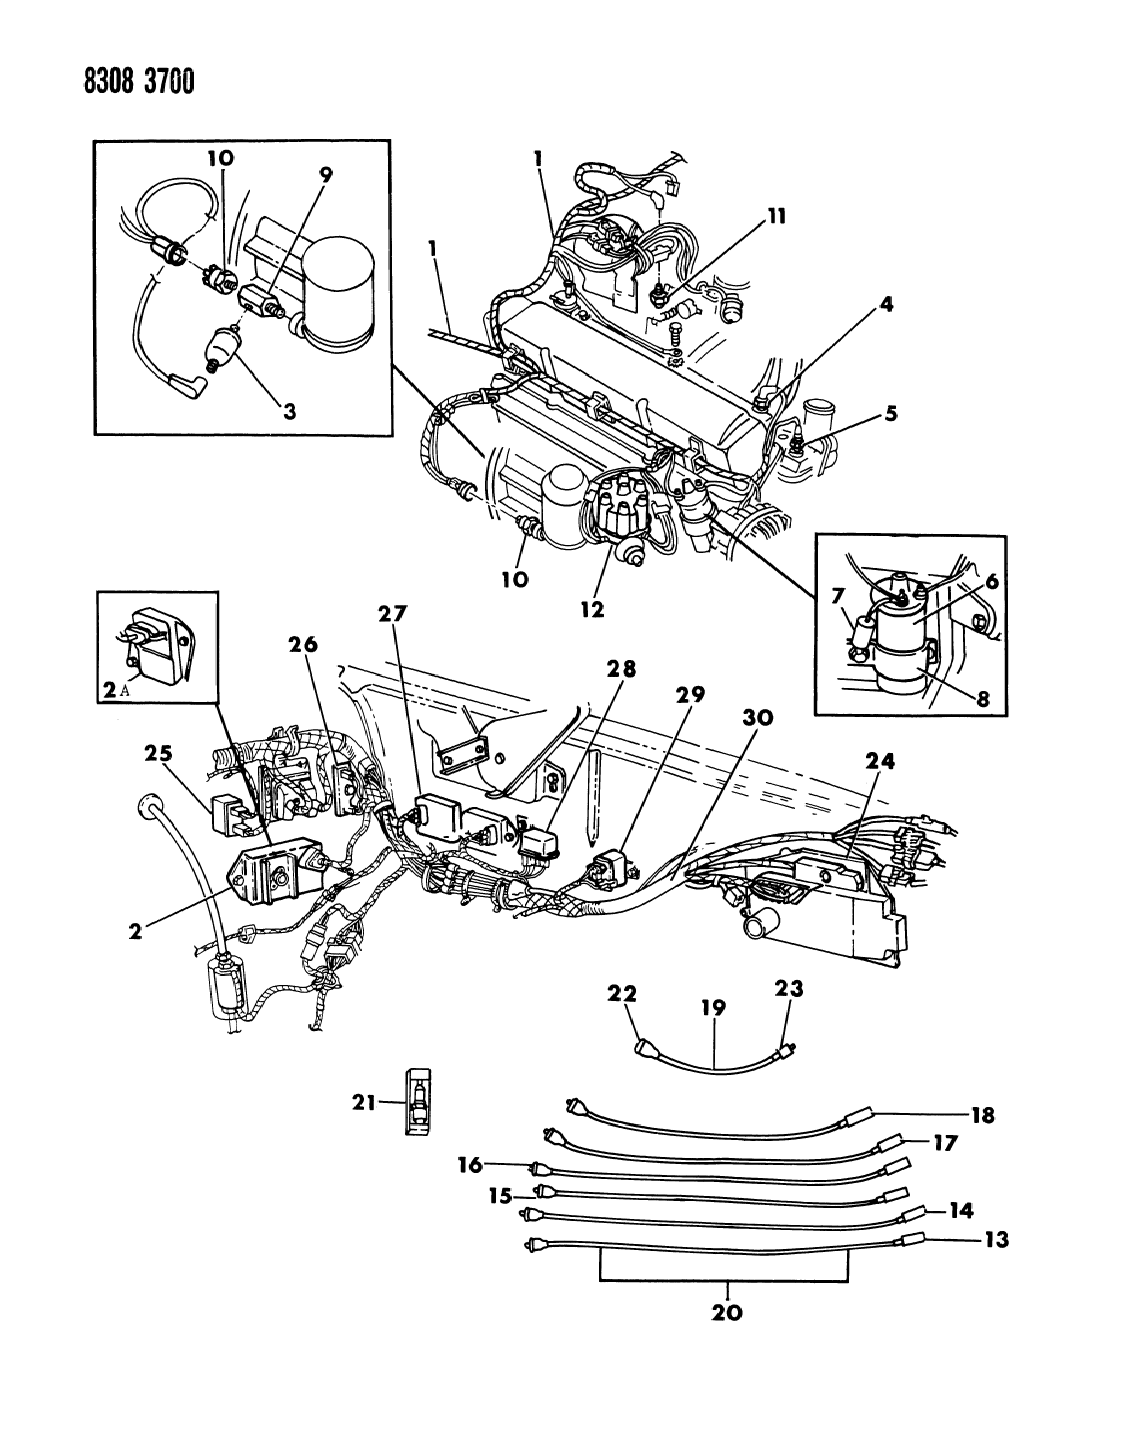 1986 chevy truck engine wiring diagram 4289926 - genuine mopar unit oil pressure sending